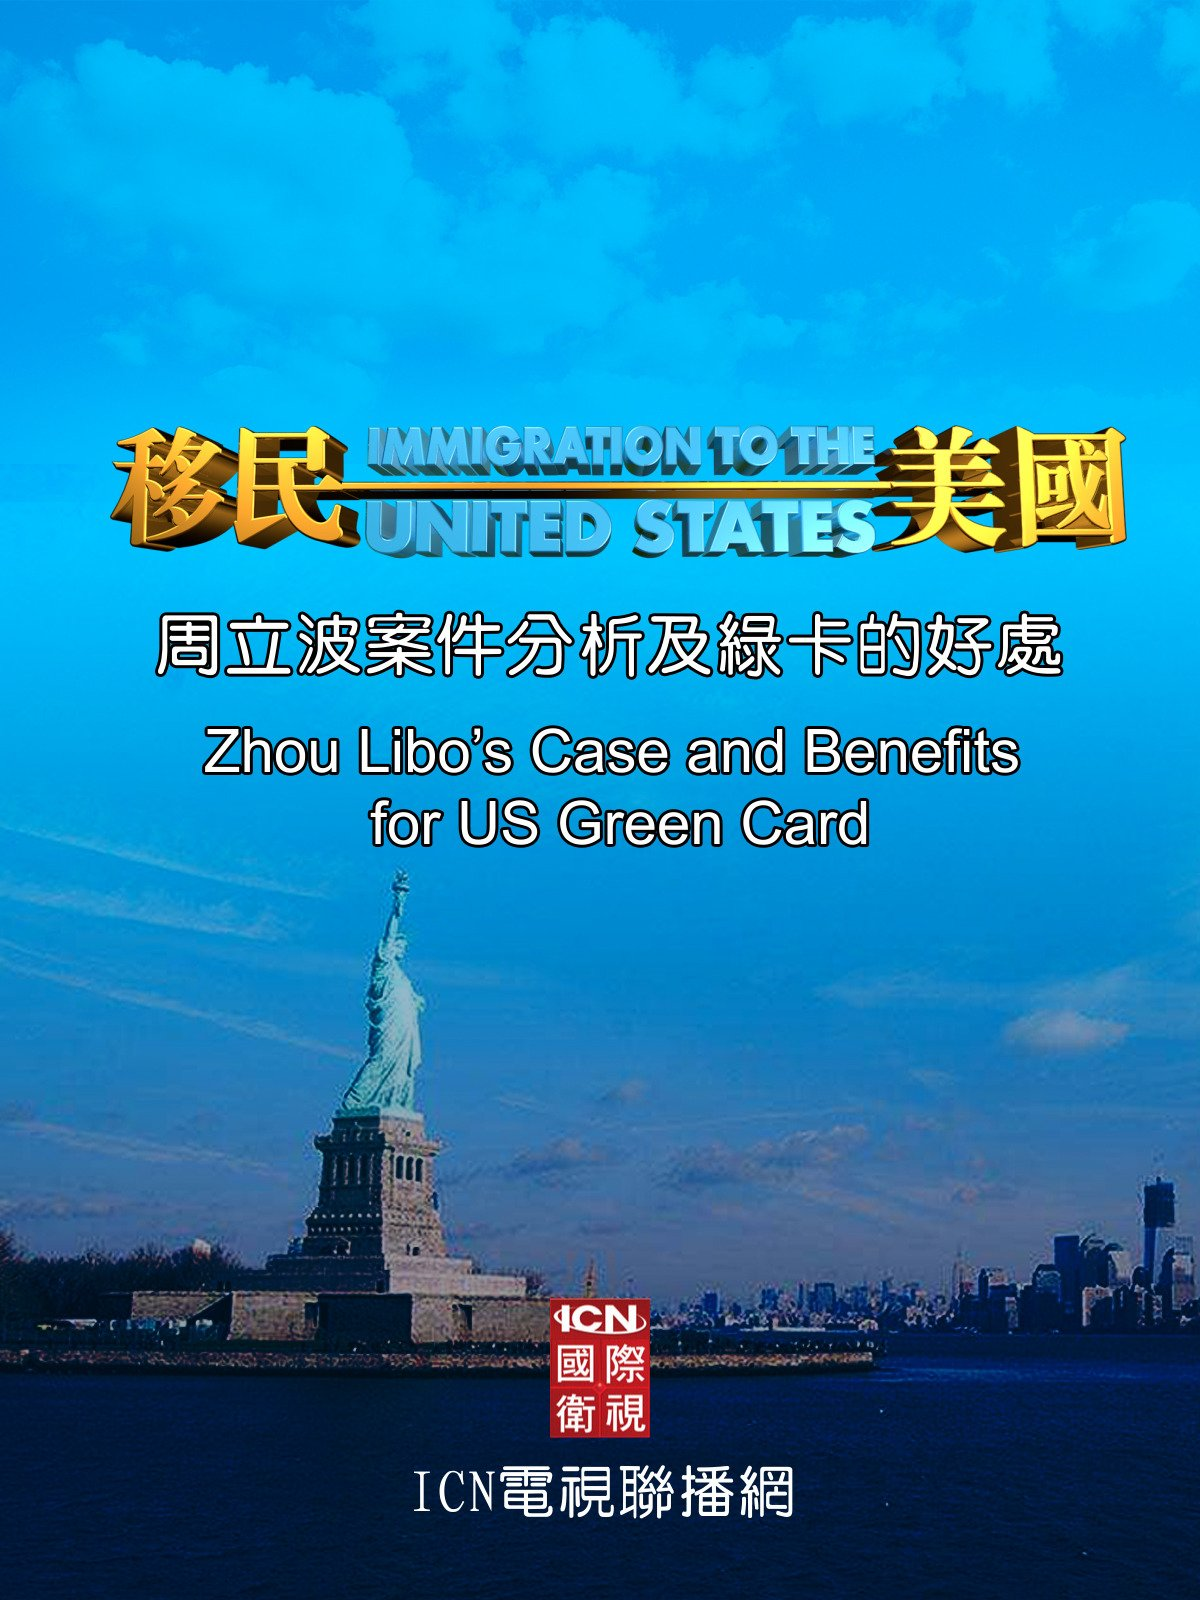 Zhou Libo's Case and Benefits for US Green Card